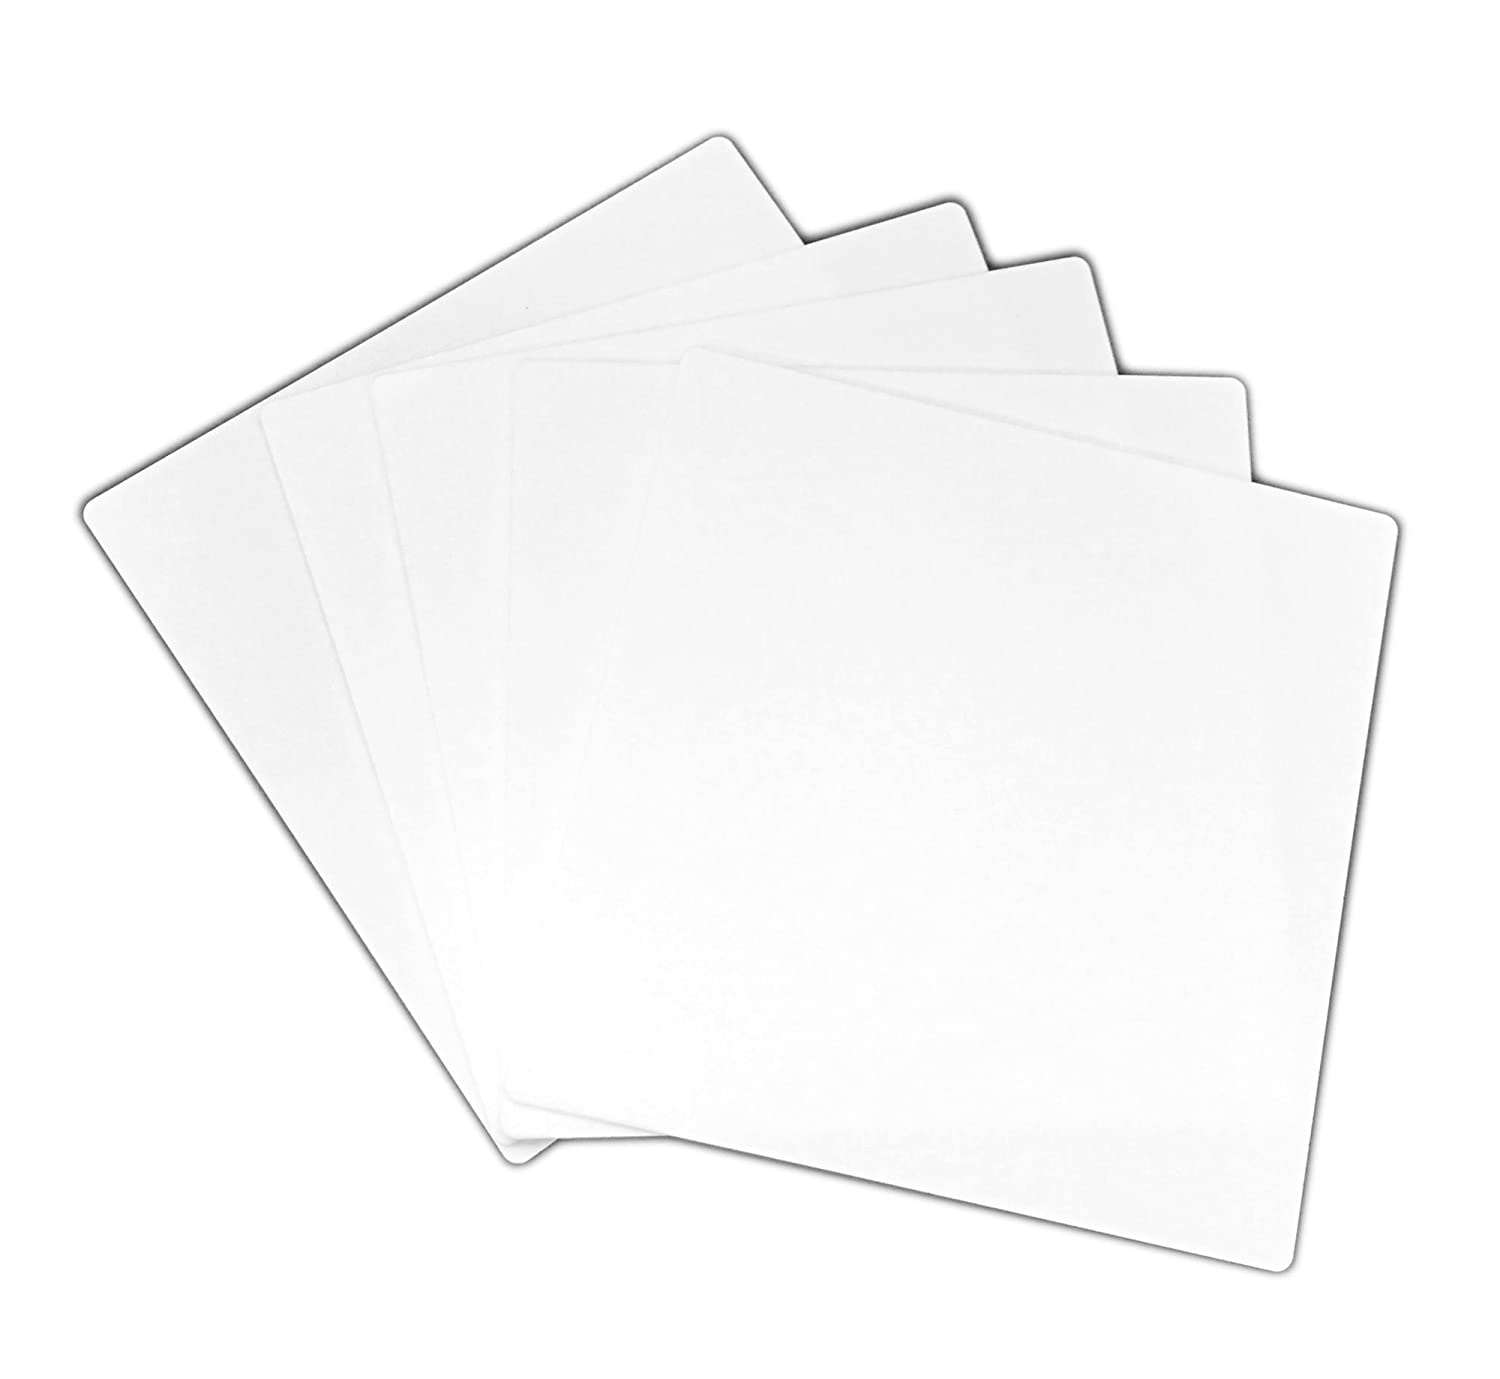 CP3 Brand 5x Alumina Ceramic Plate 4.5' Square 114cm Square 1mm .0394' thick rounded corners by CP3, Inc.